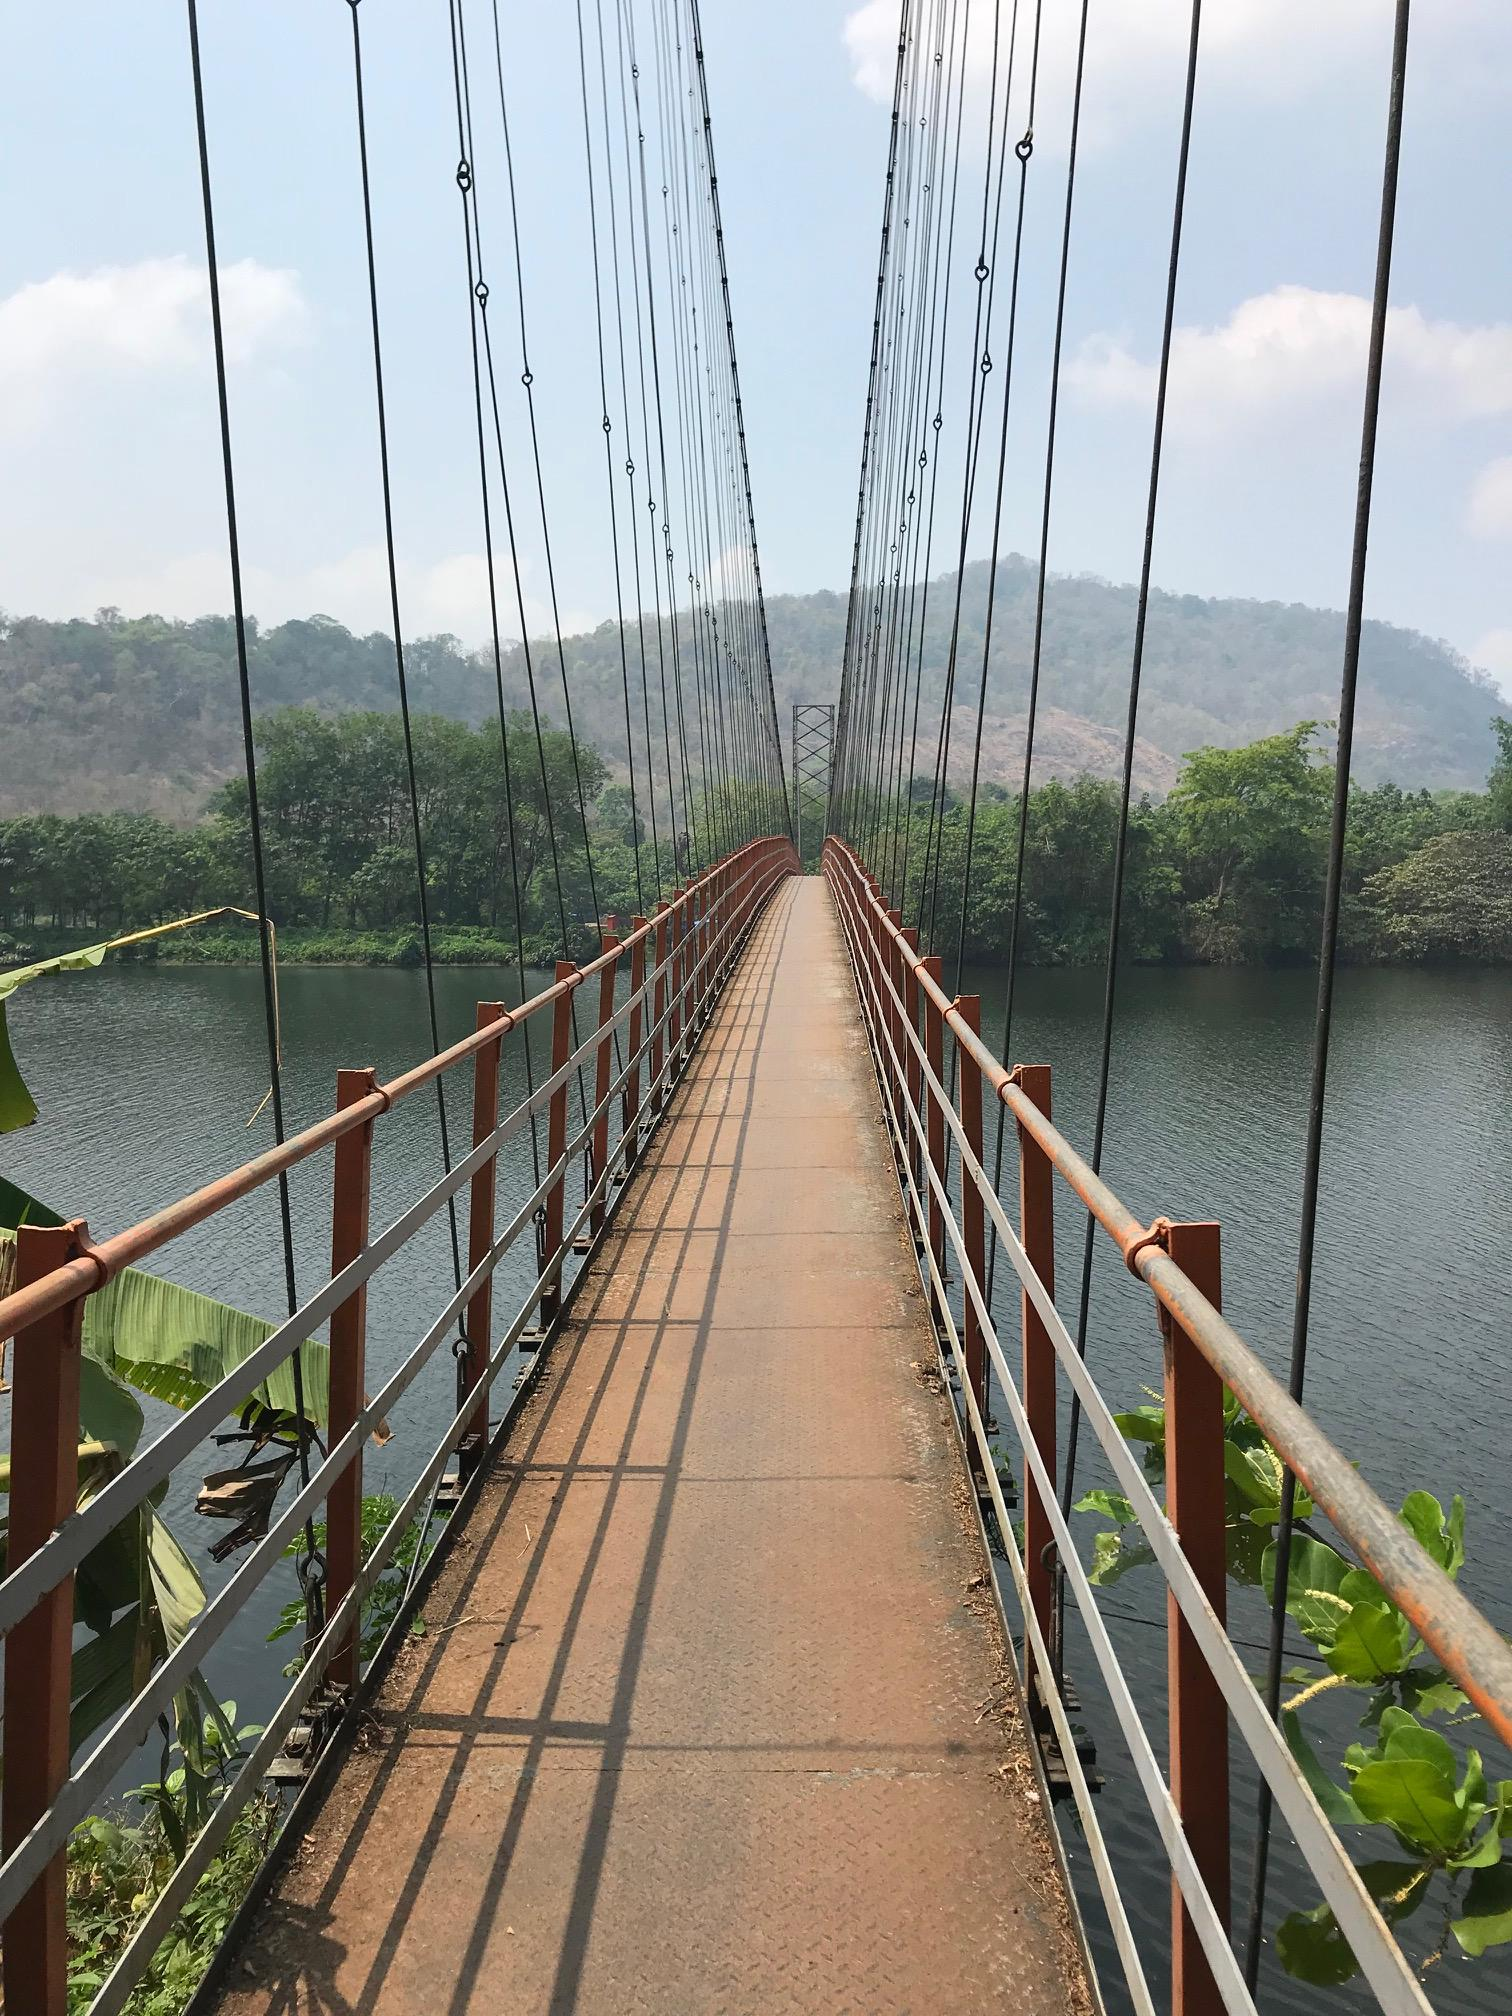 Walk or cycle to the nearby suspension bridge over the Periyar River